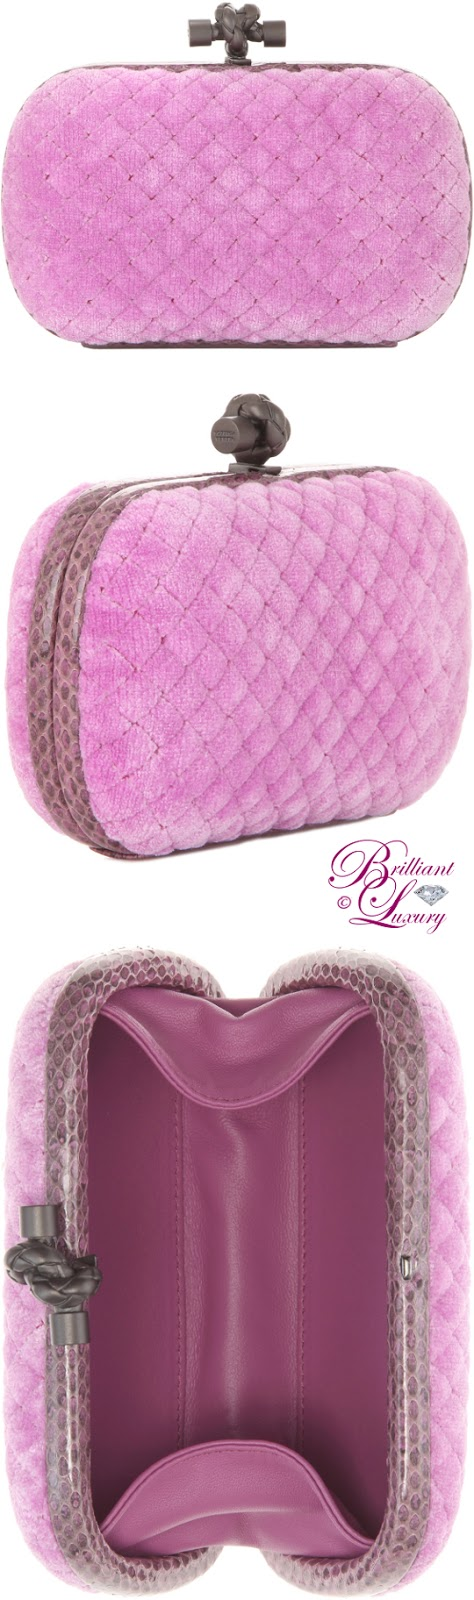 Brilliant Luxury ♦ Bottega Veneta Knot Cotton-Blend And Snakeskin Clutch